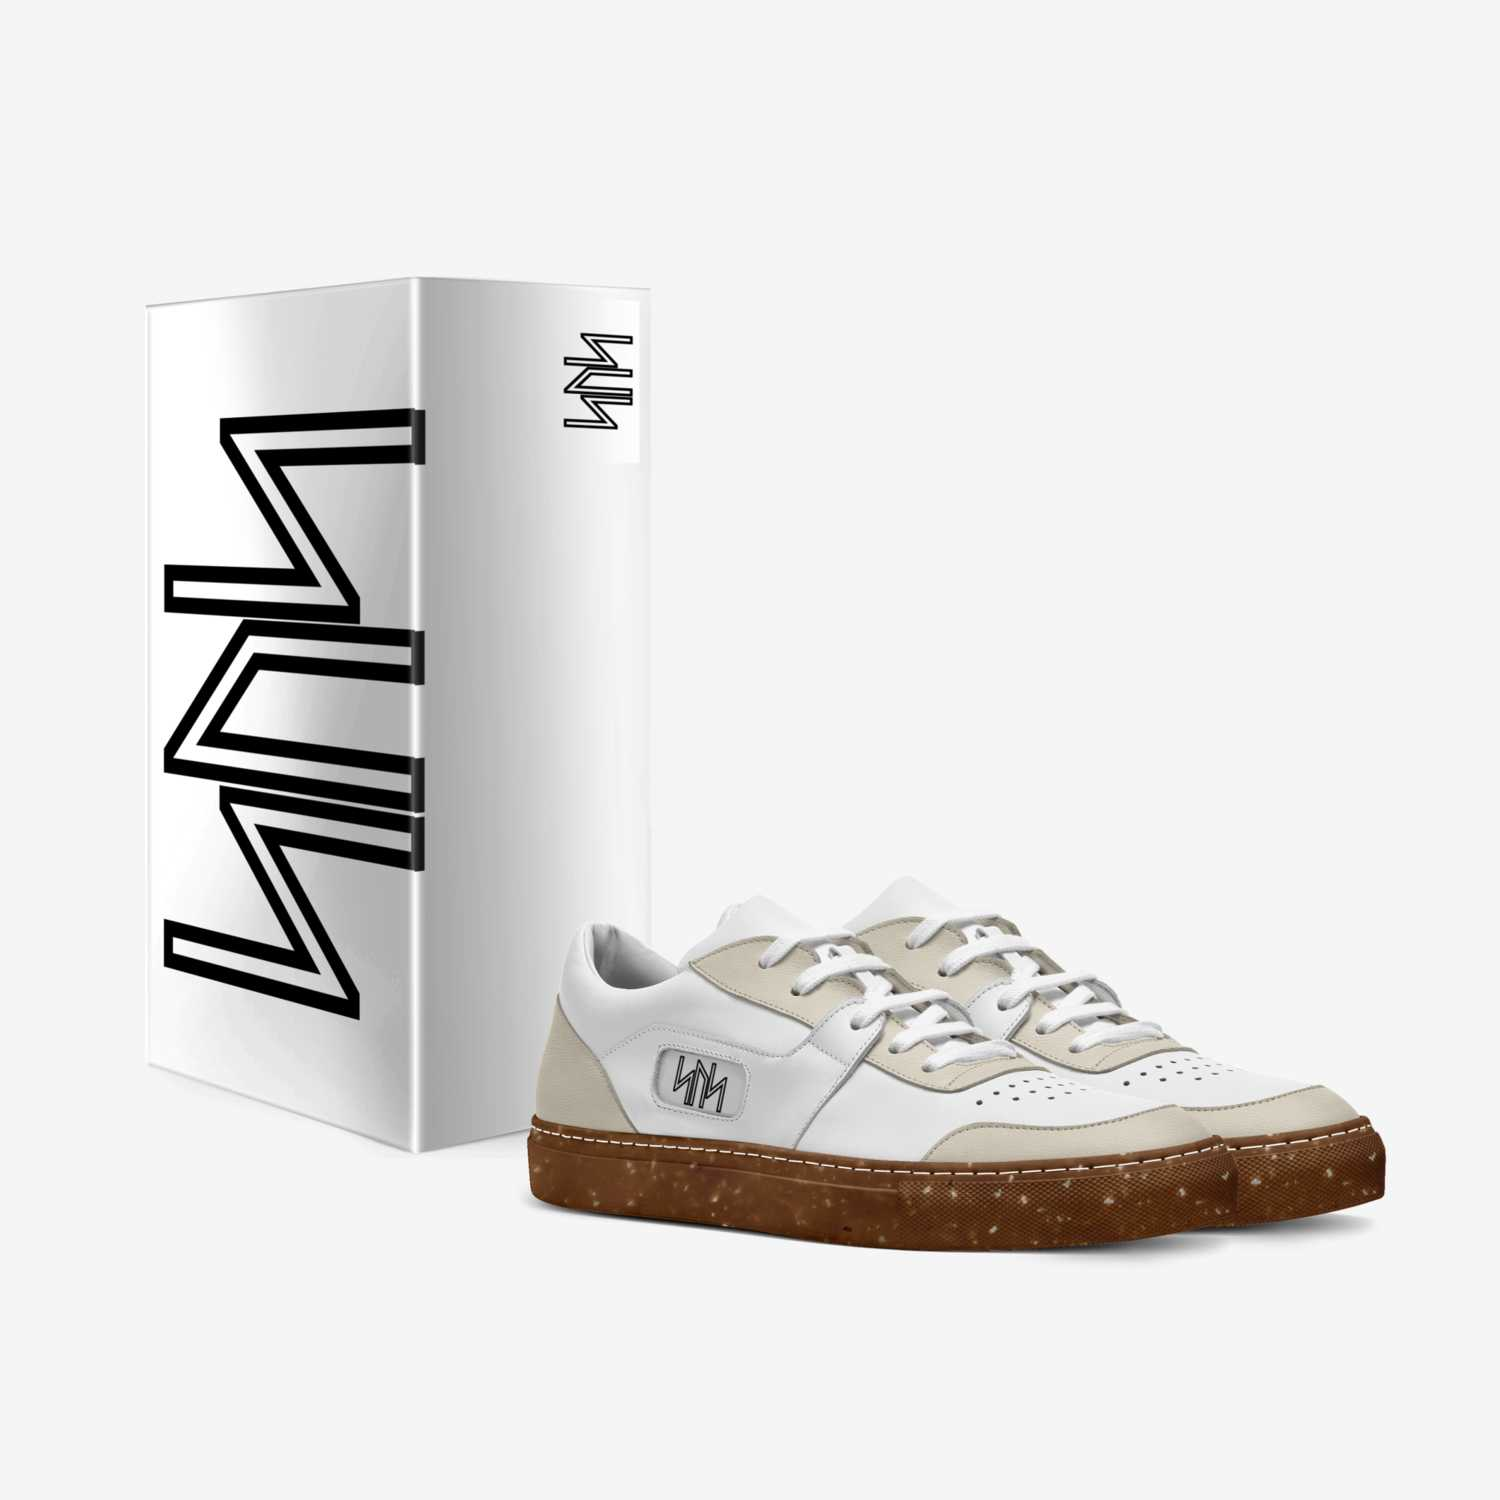 WHITE TENNIS SHOES custom made in Italy shoes by Jon Mcbean | Box view